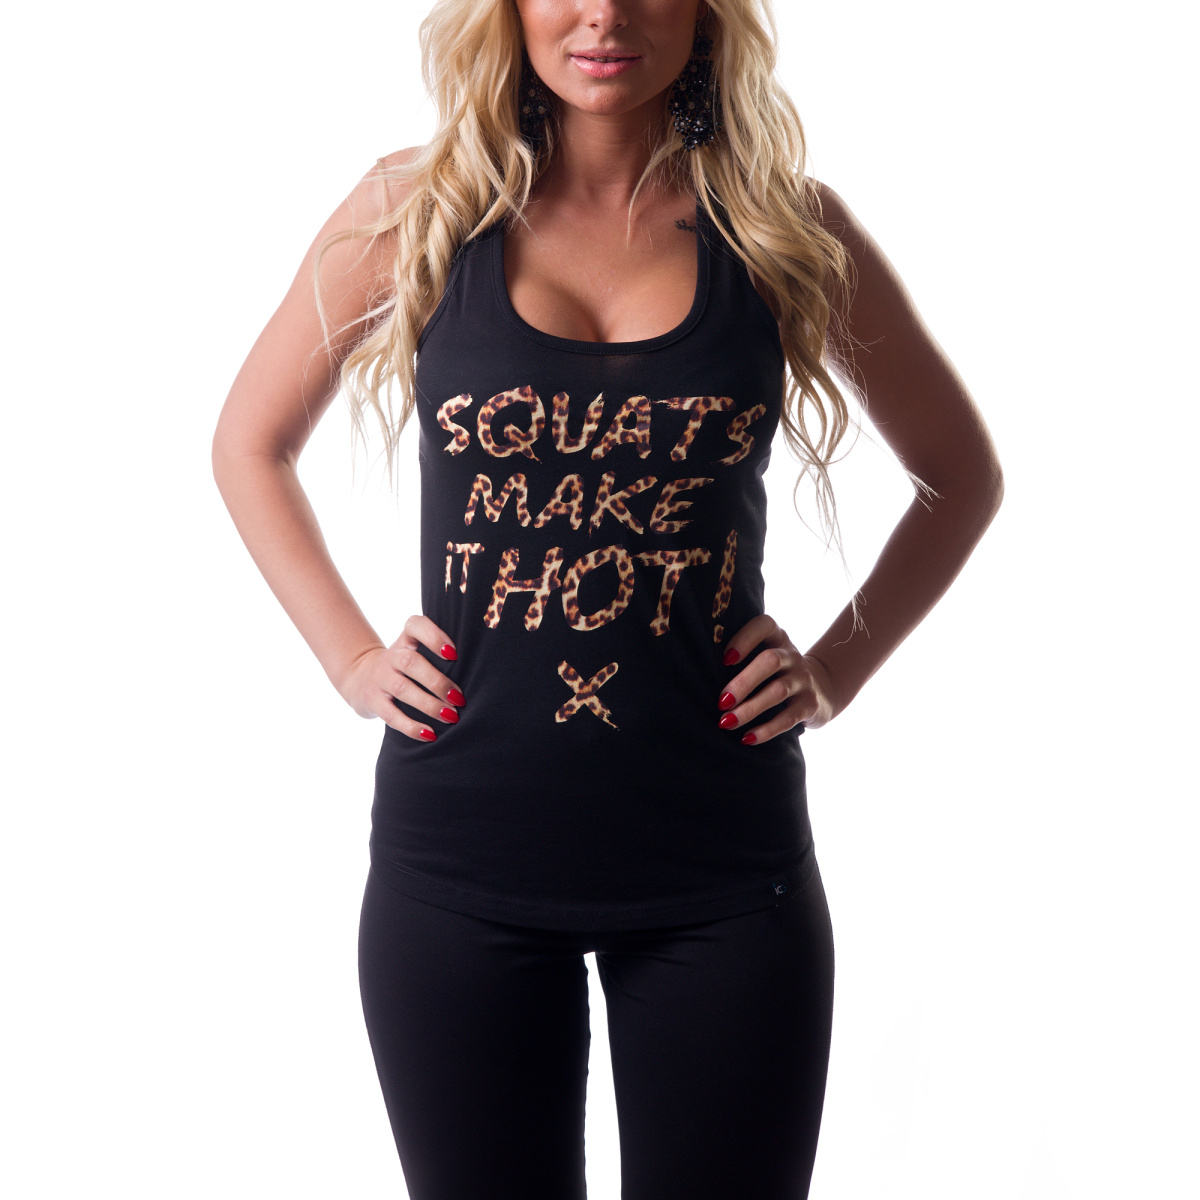 Tílko ICONICGYM Squats Make It Hot - leopard | černá, XL